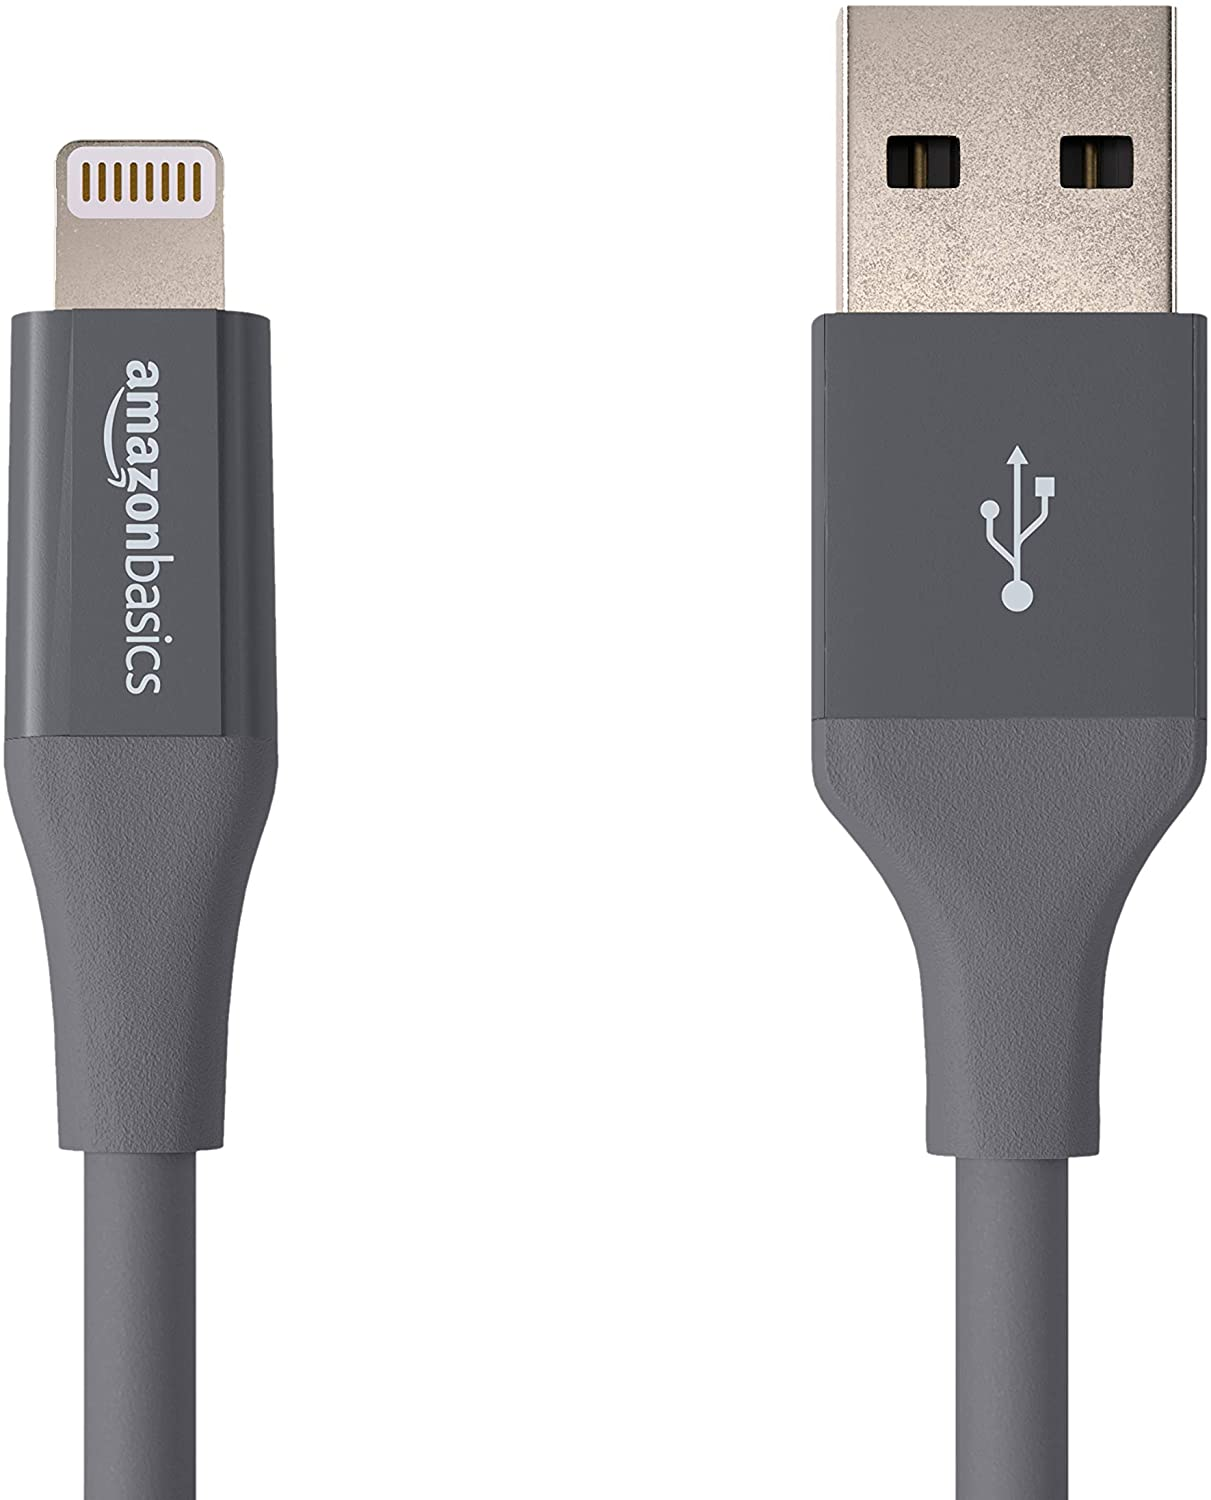 AmazonBasics Lightning to USB A Cable, Advanced Collection, MFi Certified iPhone Charger, Grey, 4 Inch, 2 Pack